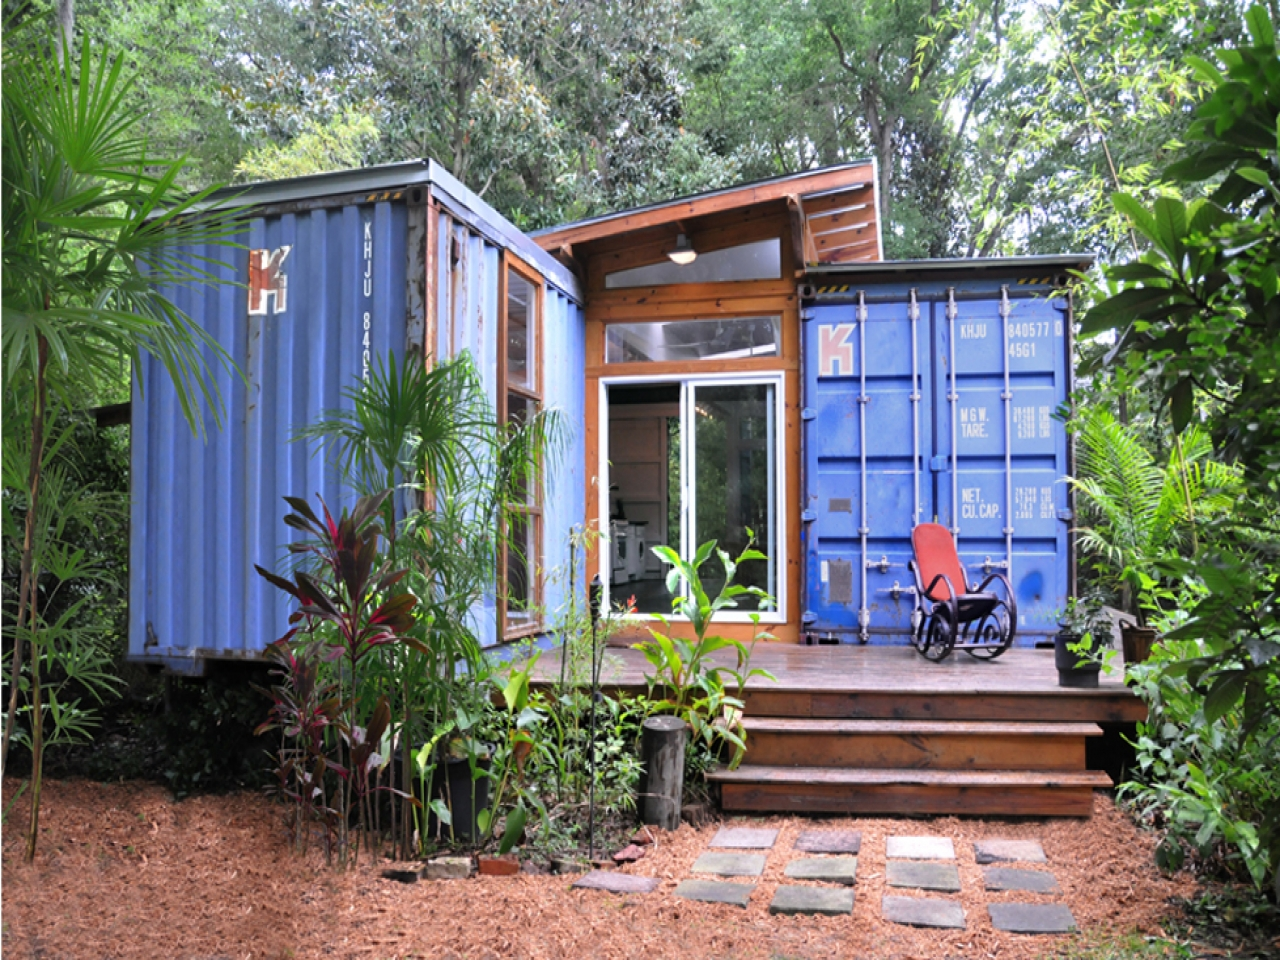 Shipping container homes kits shipping container tiny home small built homes - Container home kit ...